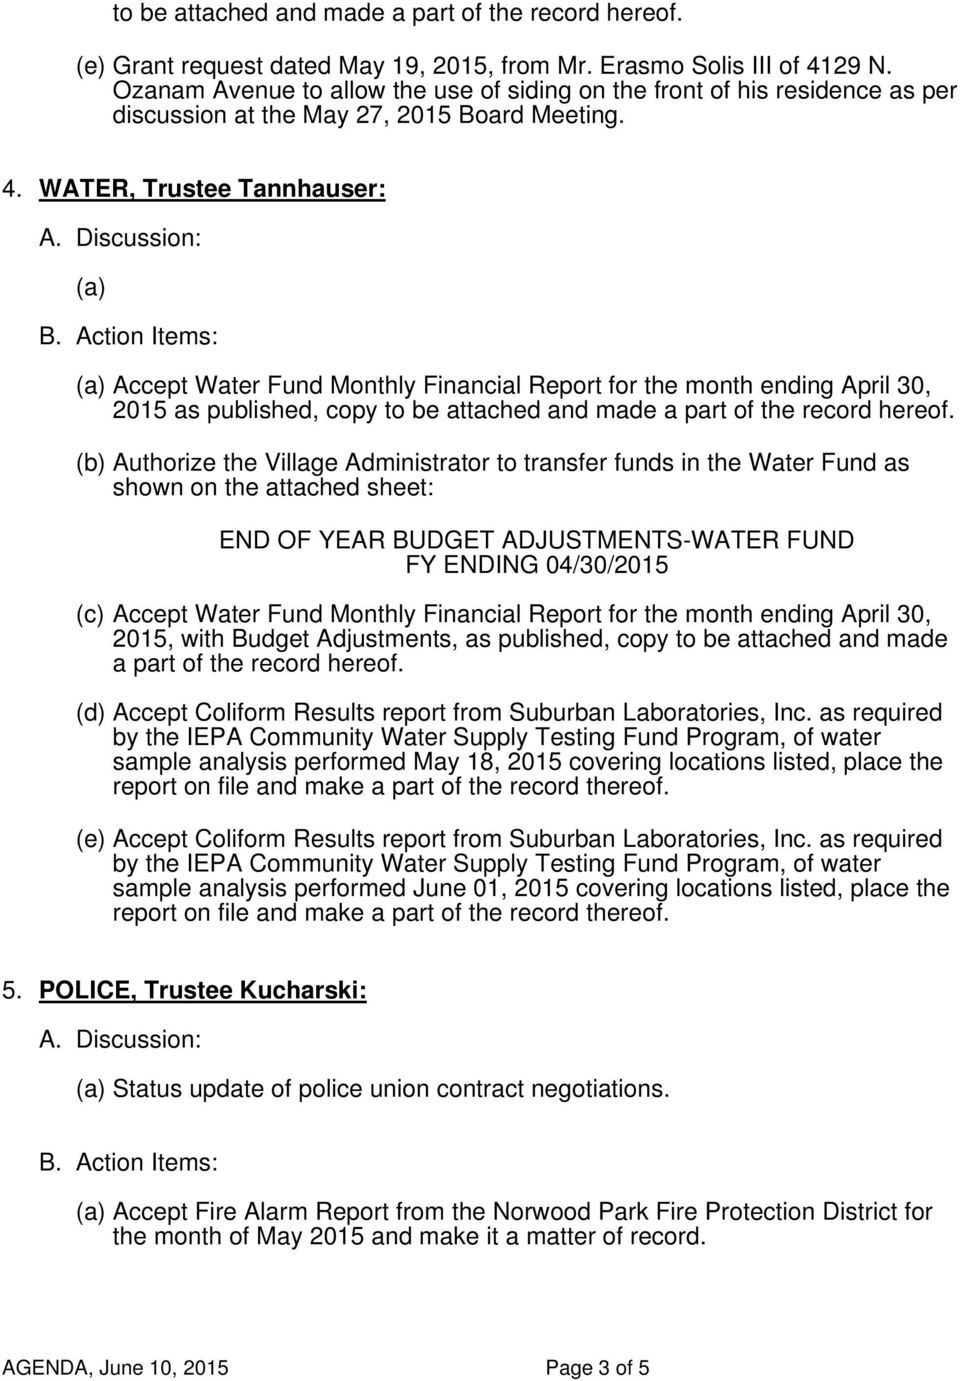 WATER, Trustee Tannhauser: Accept Water Fund Monthly Financial Report for the month ending April 30, 2015 as published, copy to be attached and made a part of the record hereof.